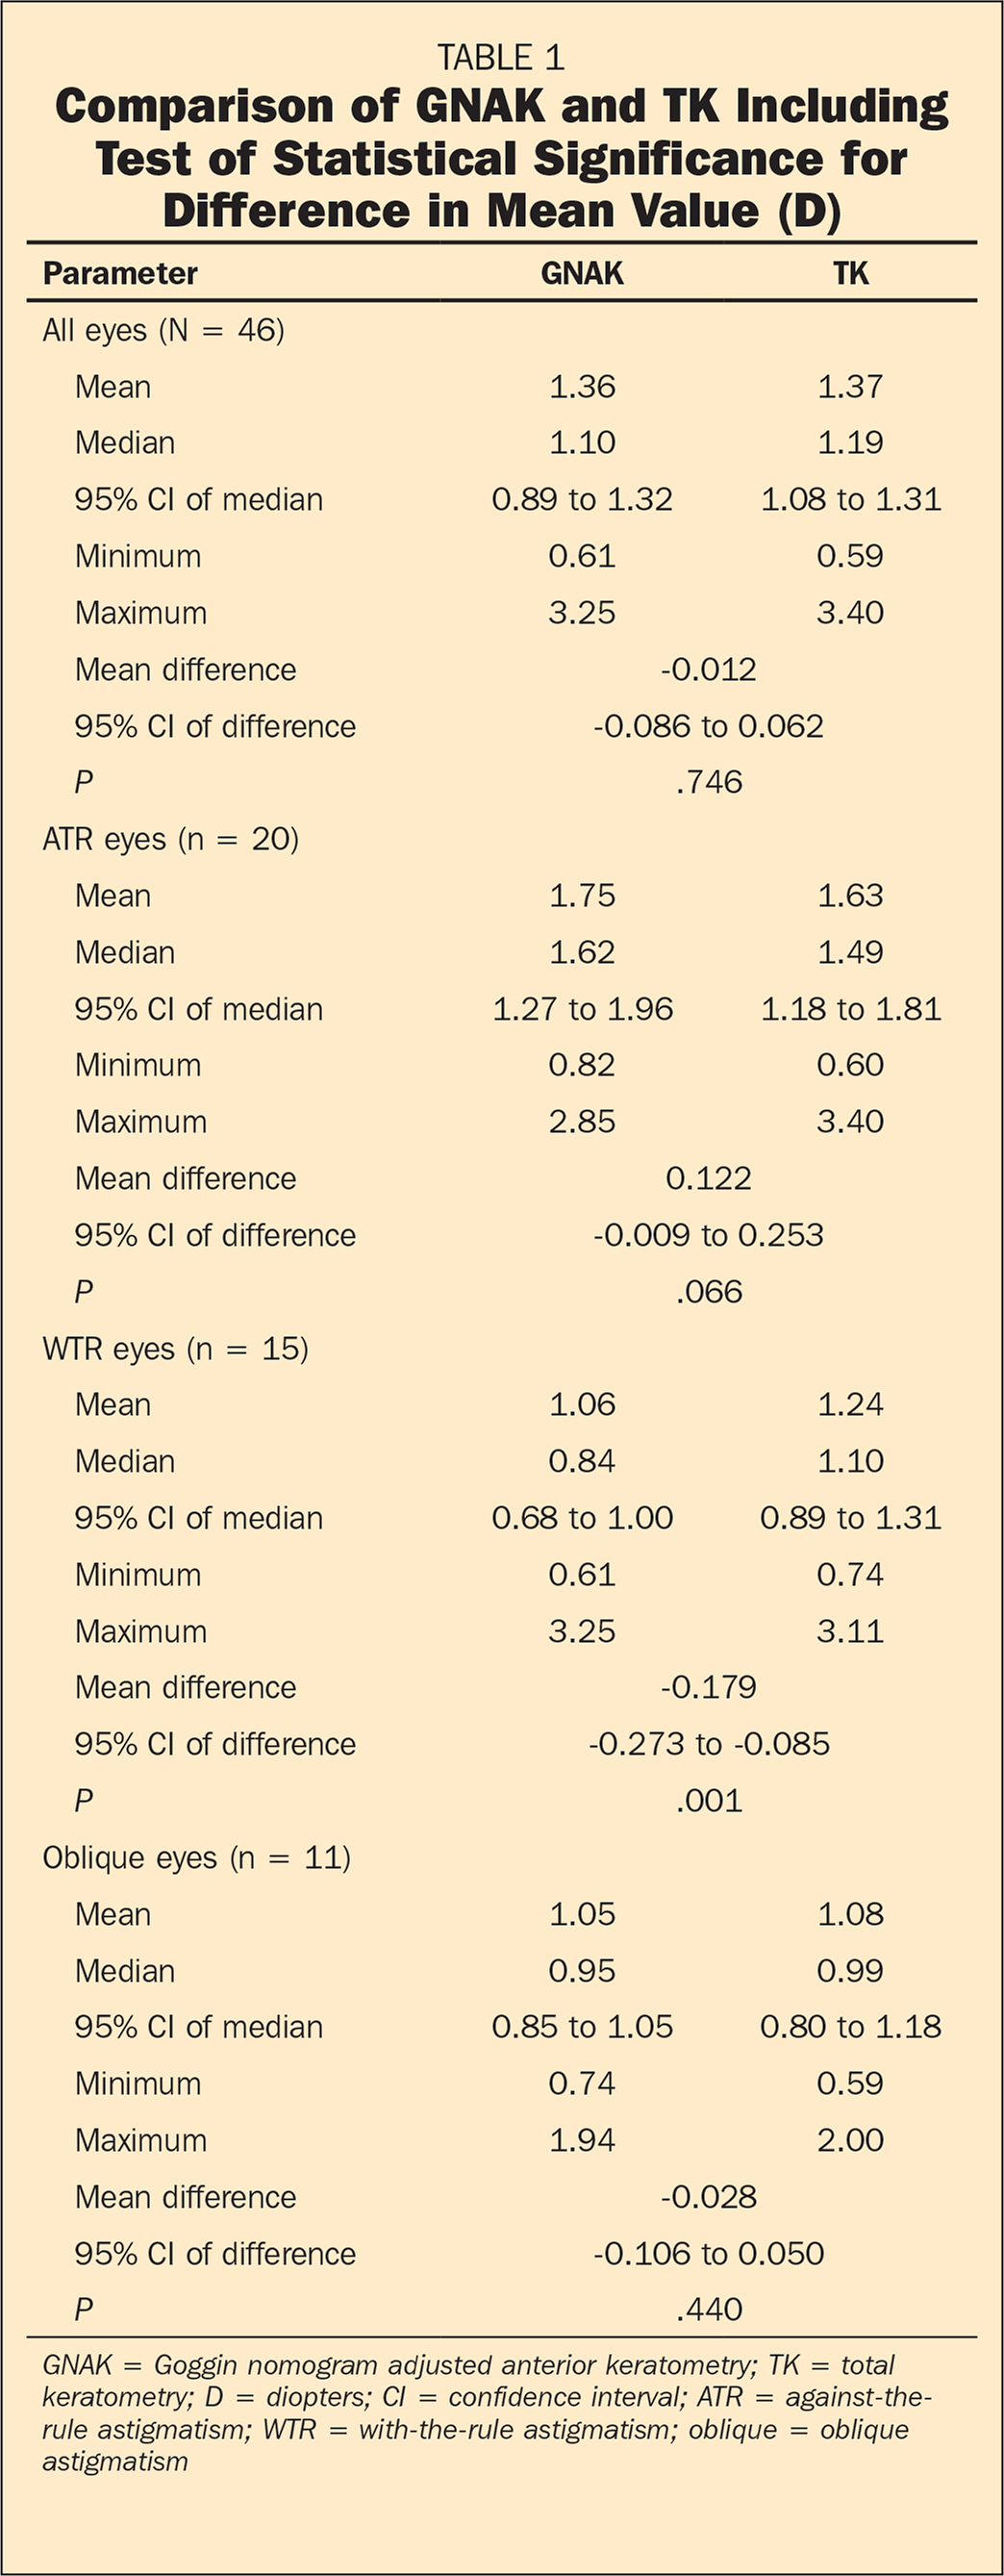 Comparison of GNAK and TK Including Test of Statistical Significance for Difference in Mean Value (D)